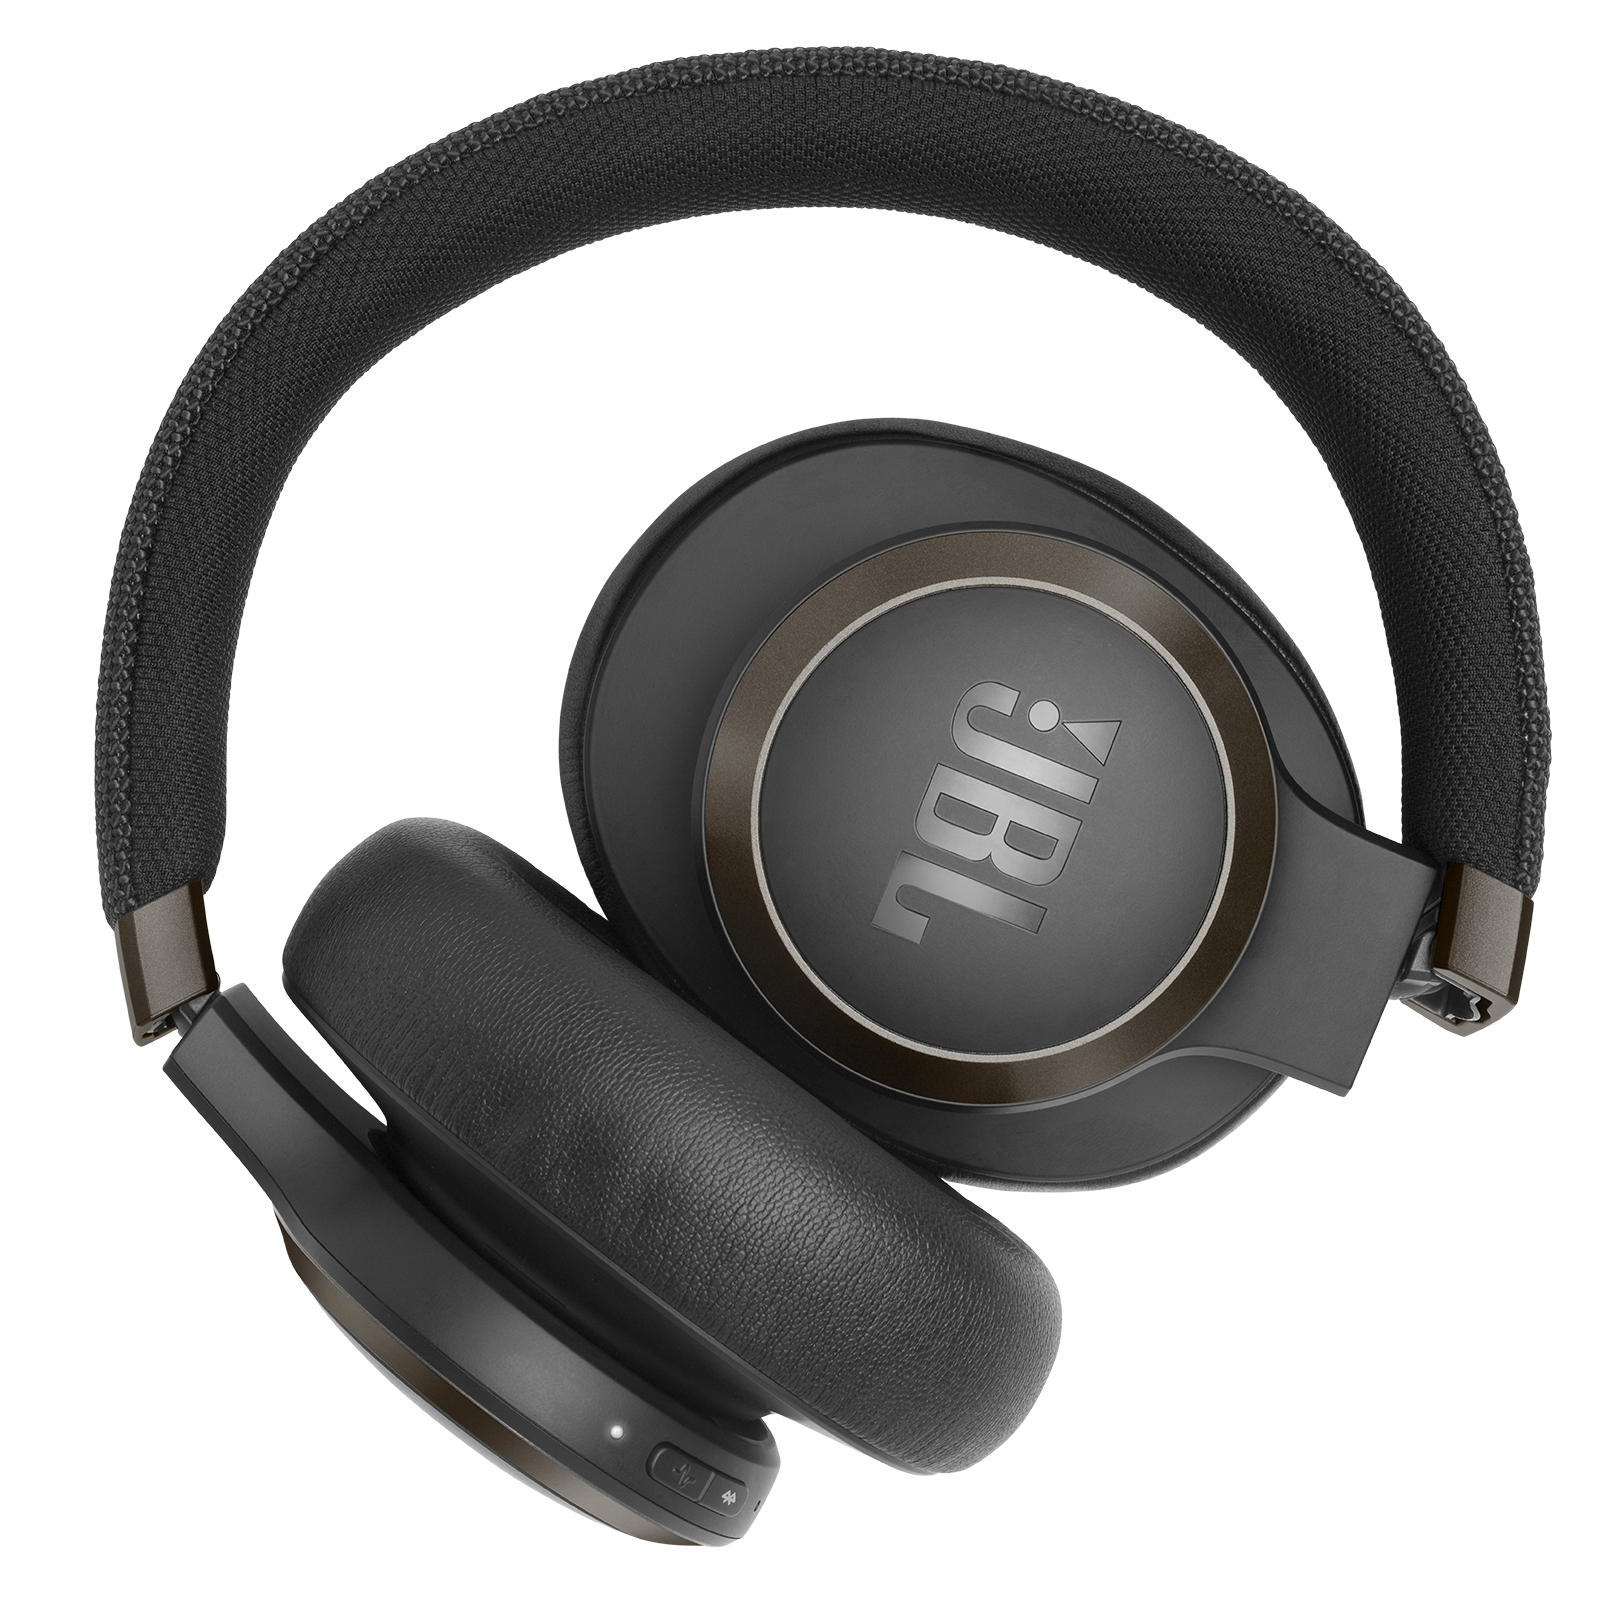 JBL LIVE 650BTNC - Black - Wireless Over-Ear Noise-Cancelling Headphones - Detailshot 6